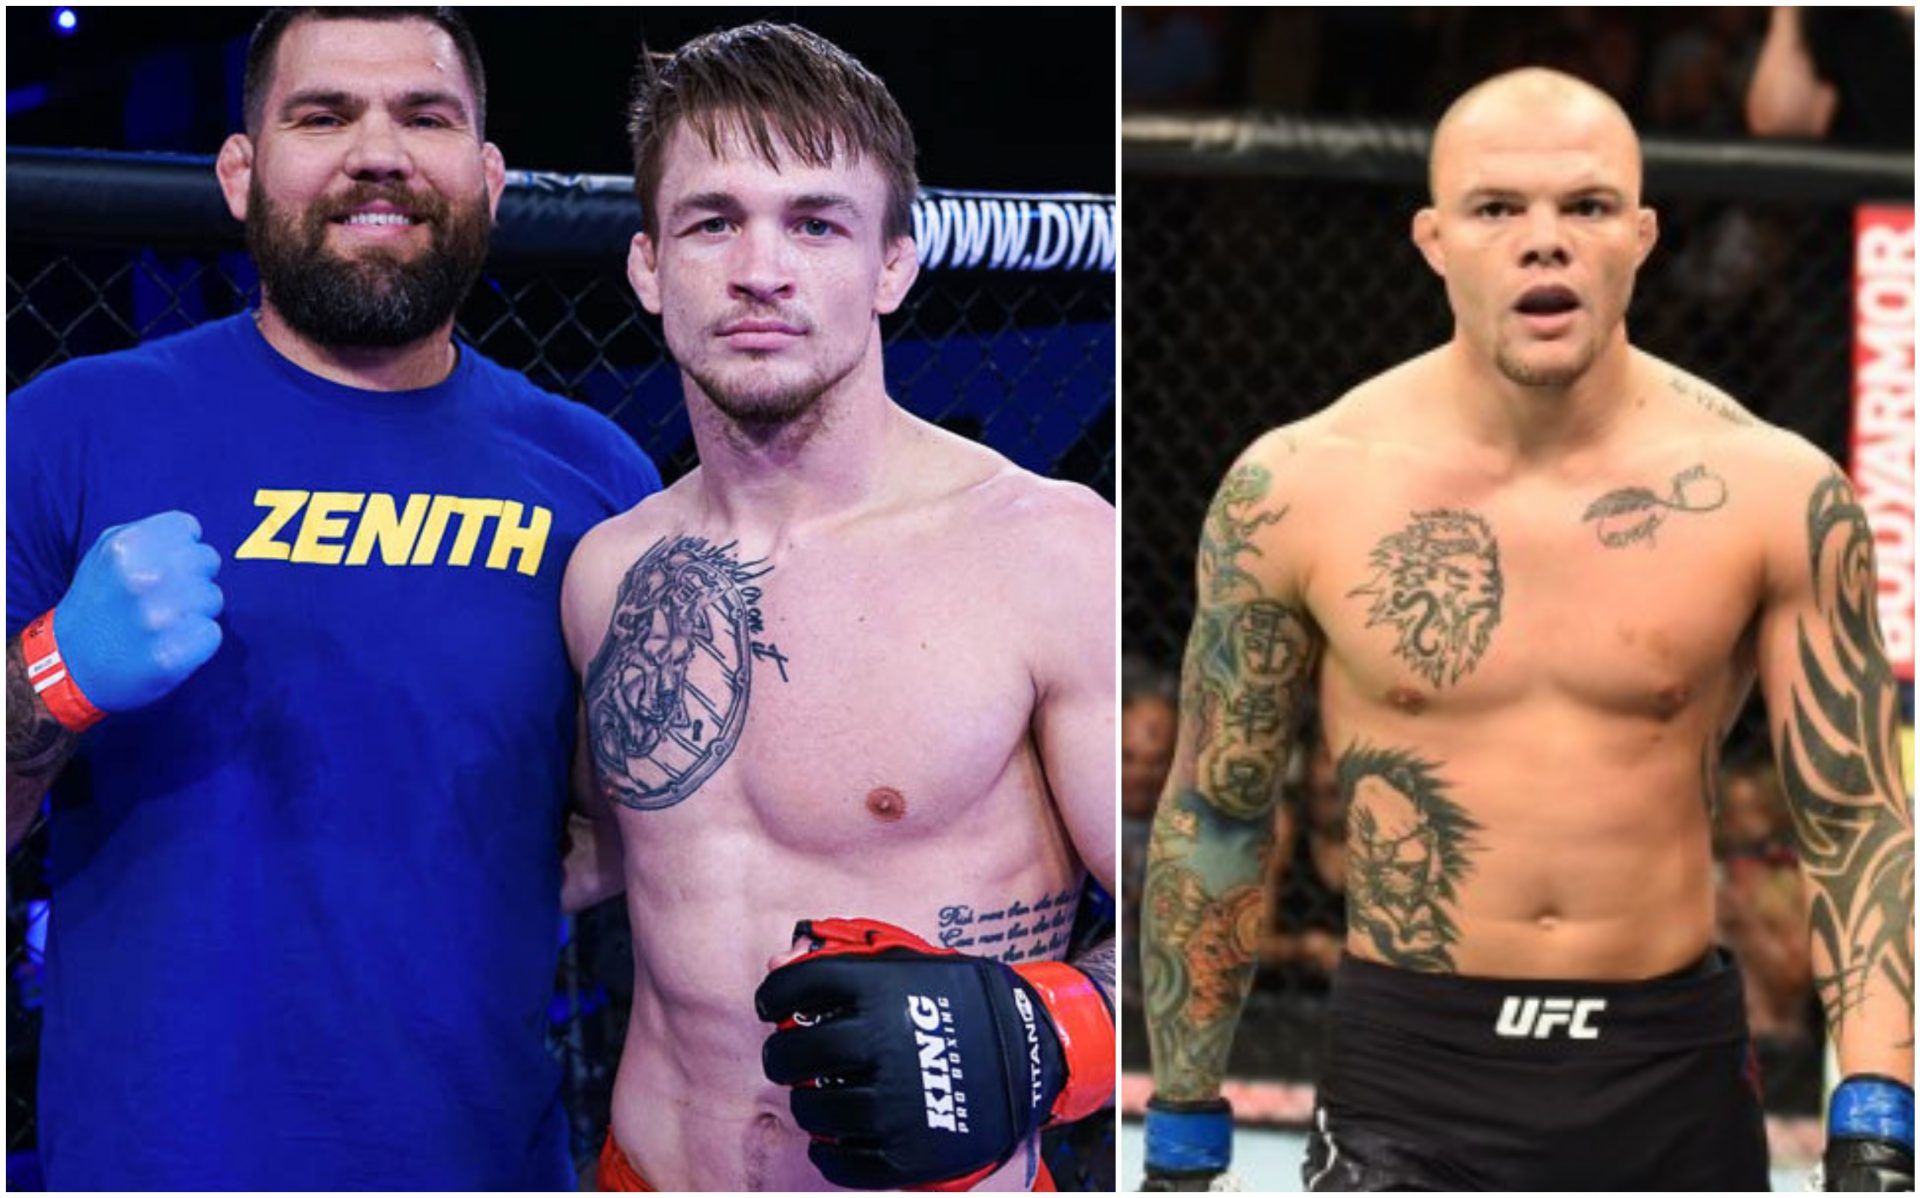 Anthony Smith shoots down comparison between him and Max Rohskopf: He wanted out of there! - Anthony Smith